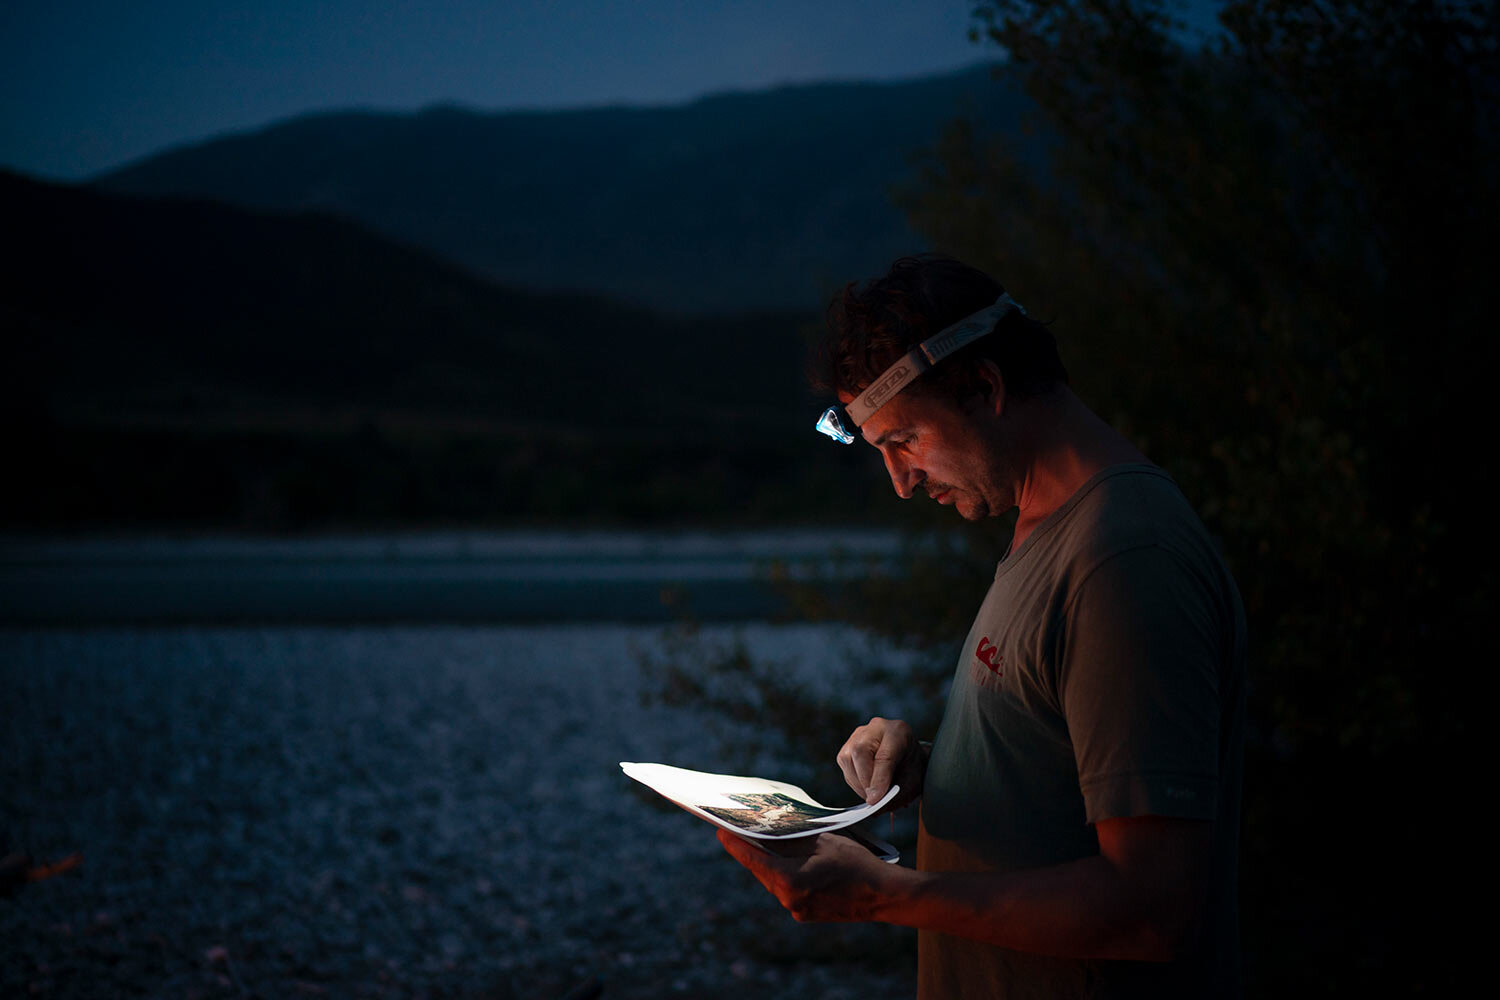 Benedikt Baeumler, a German advertising executive kayaking the length of the Vjosa River, checks his map after setting up camp on its bank in Albania. (AP Photo/Felipe Dana)